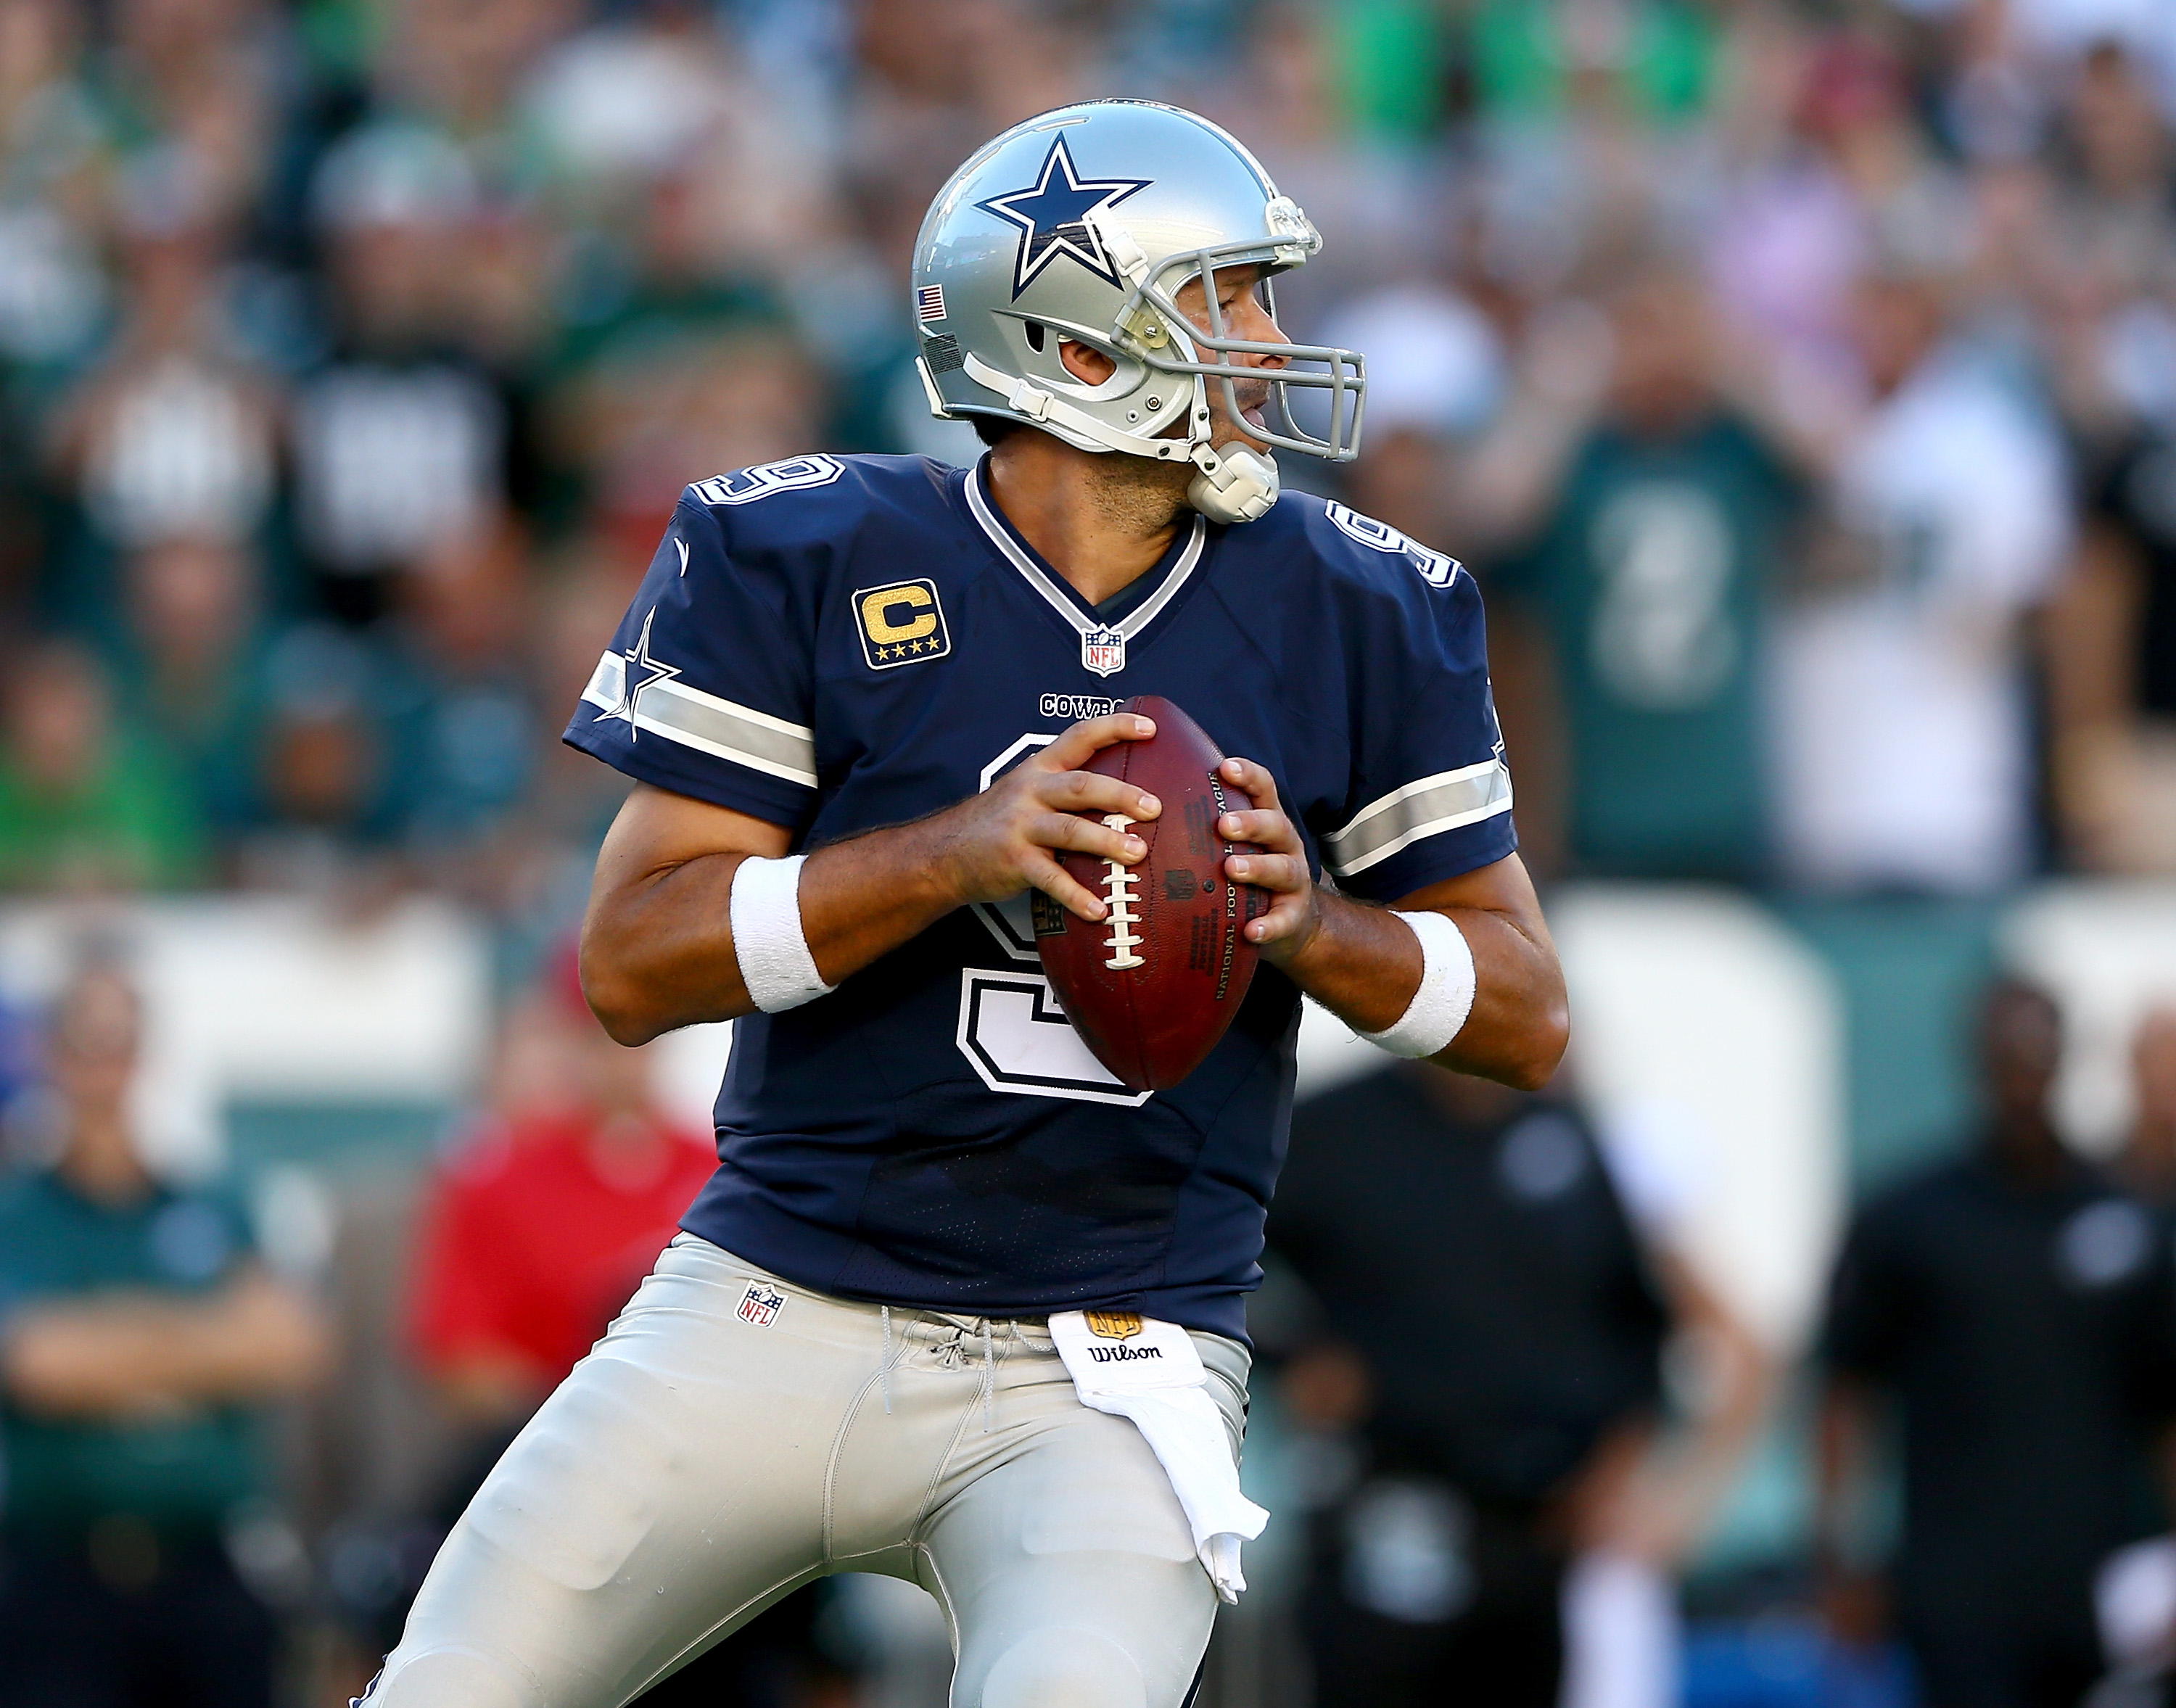 NFL pick from Reno - Is Romo's return enough for Cowboys vs. Dolphins?